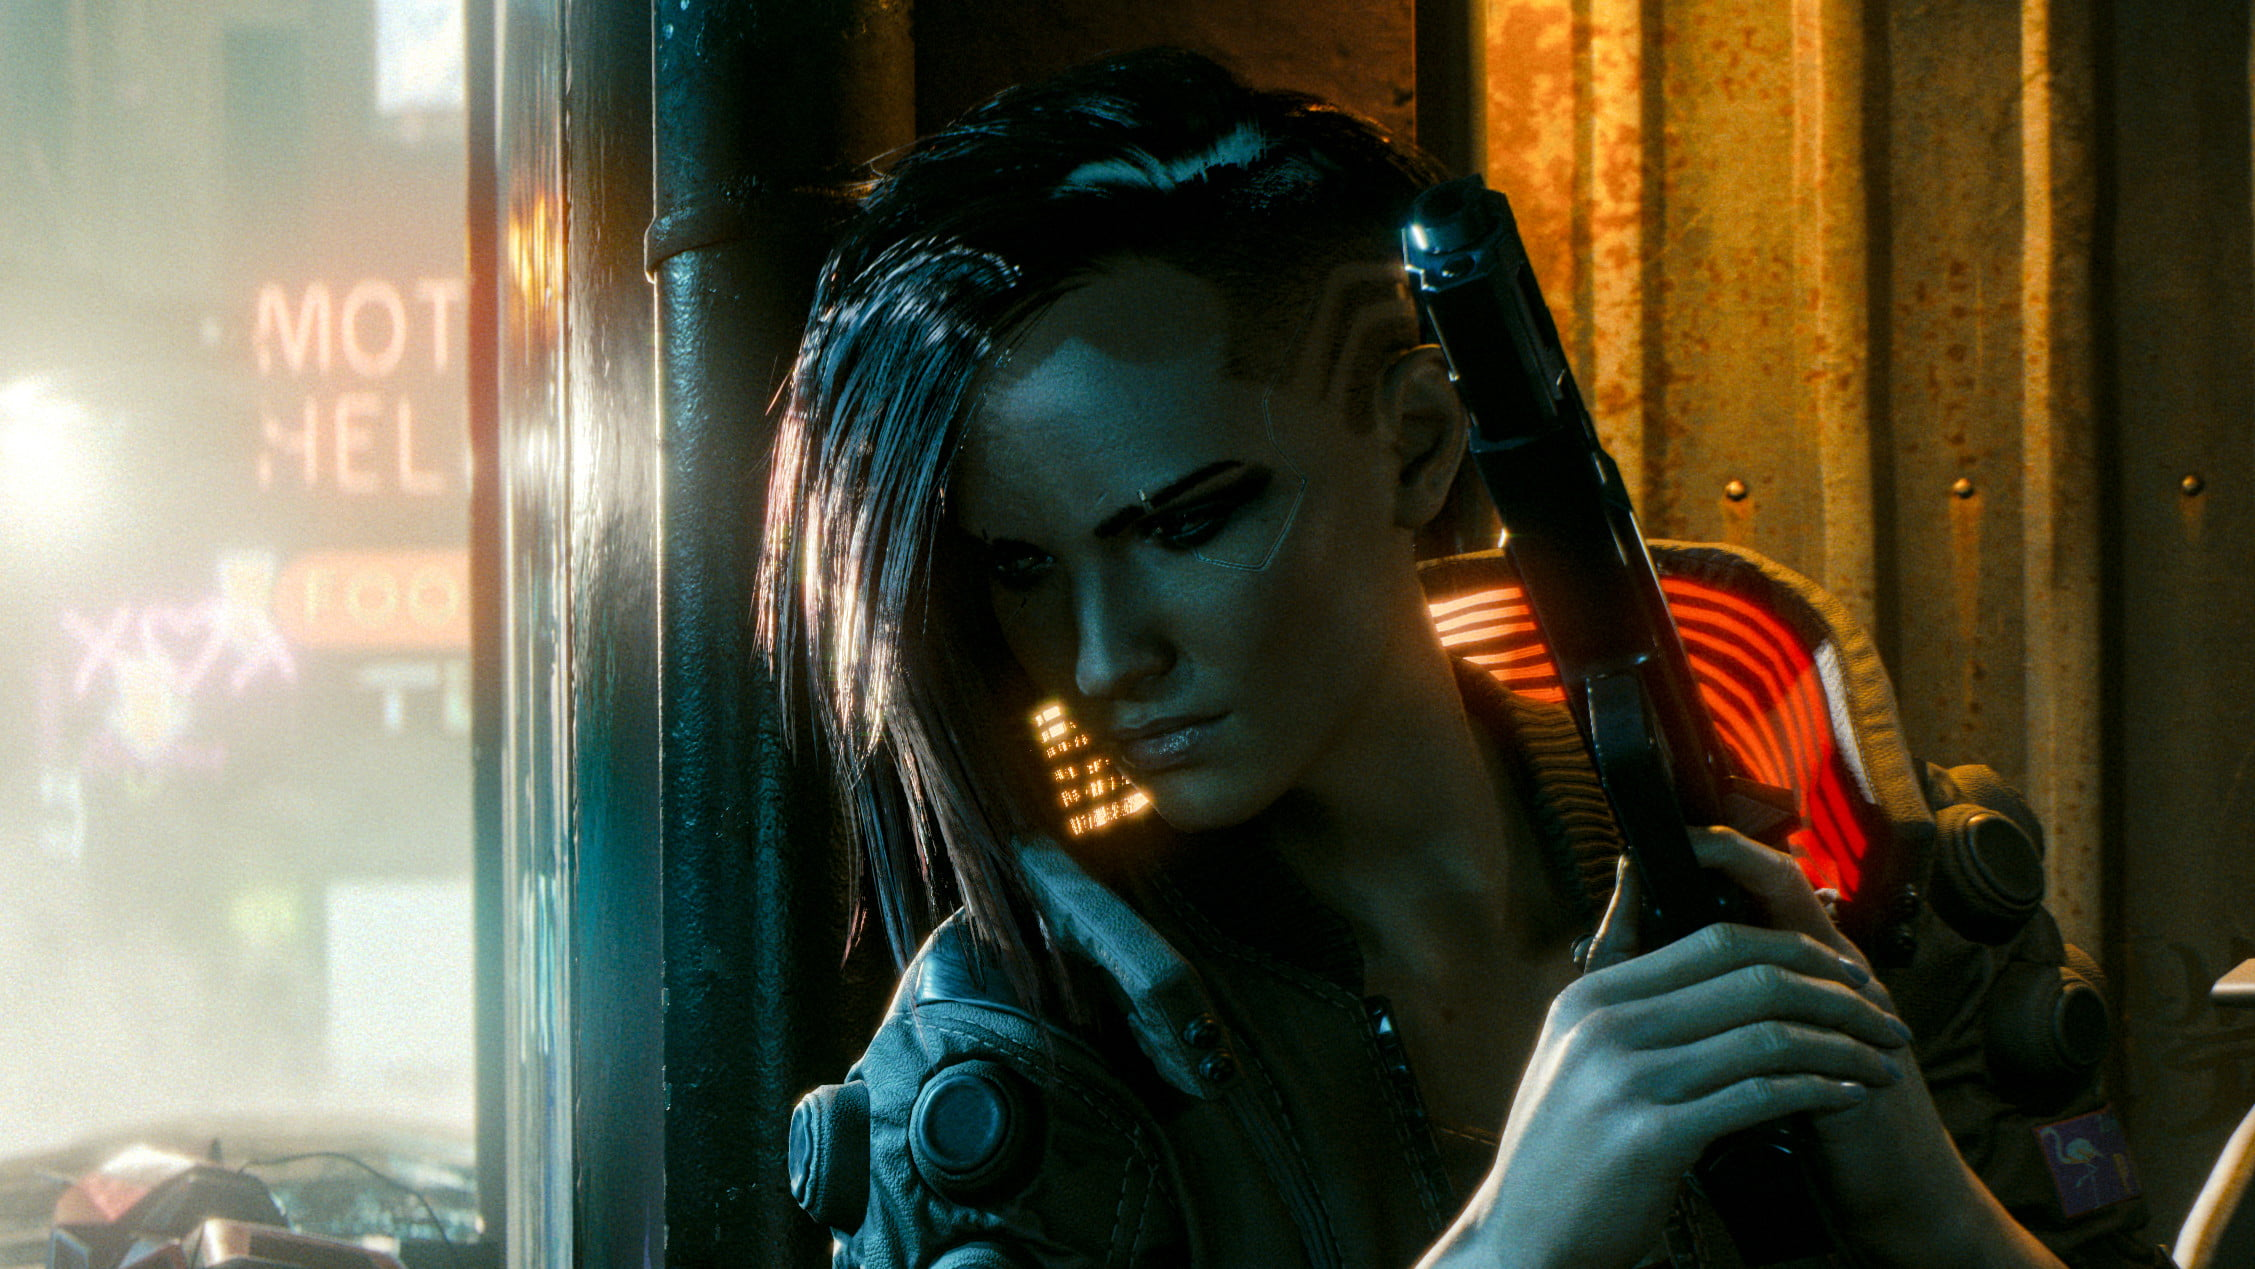 E3 Preview - Cyberpunk 2077 (PC)